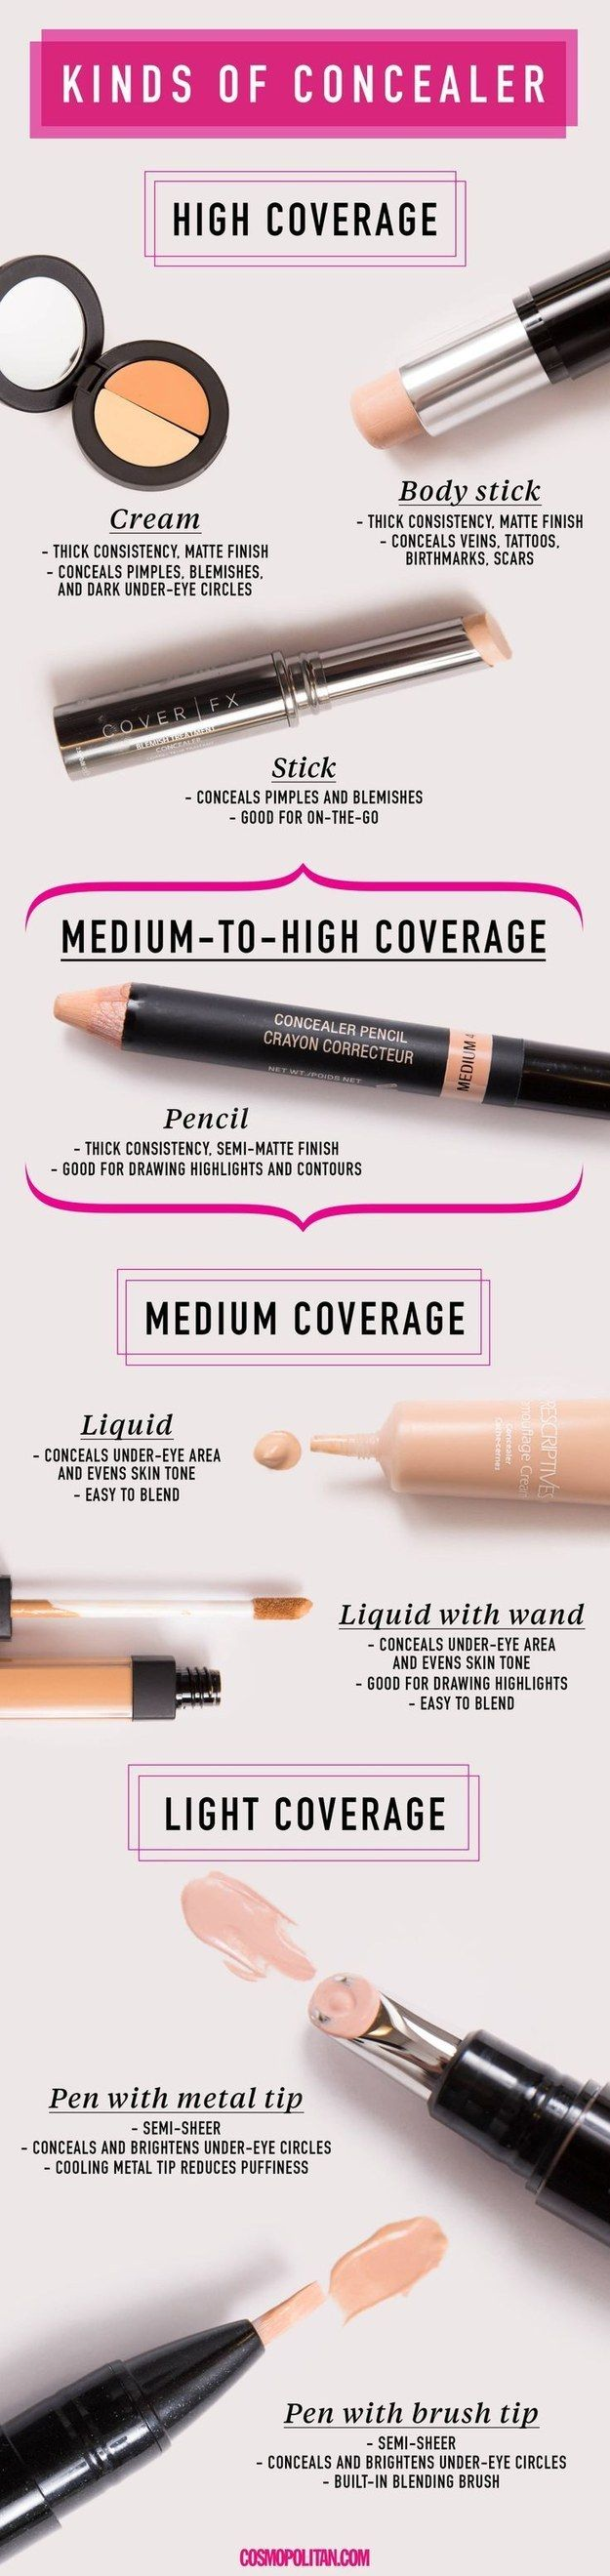 Different formulas work better for different parts of your face. | 19 Useful Tips For People Who Suck At Concealer